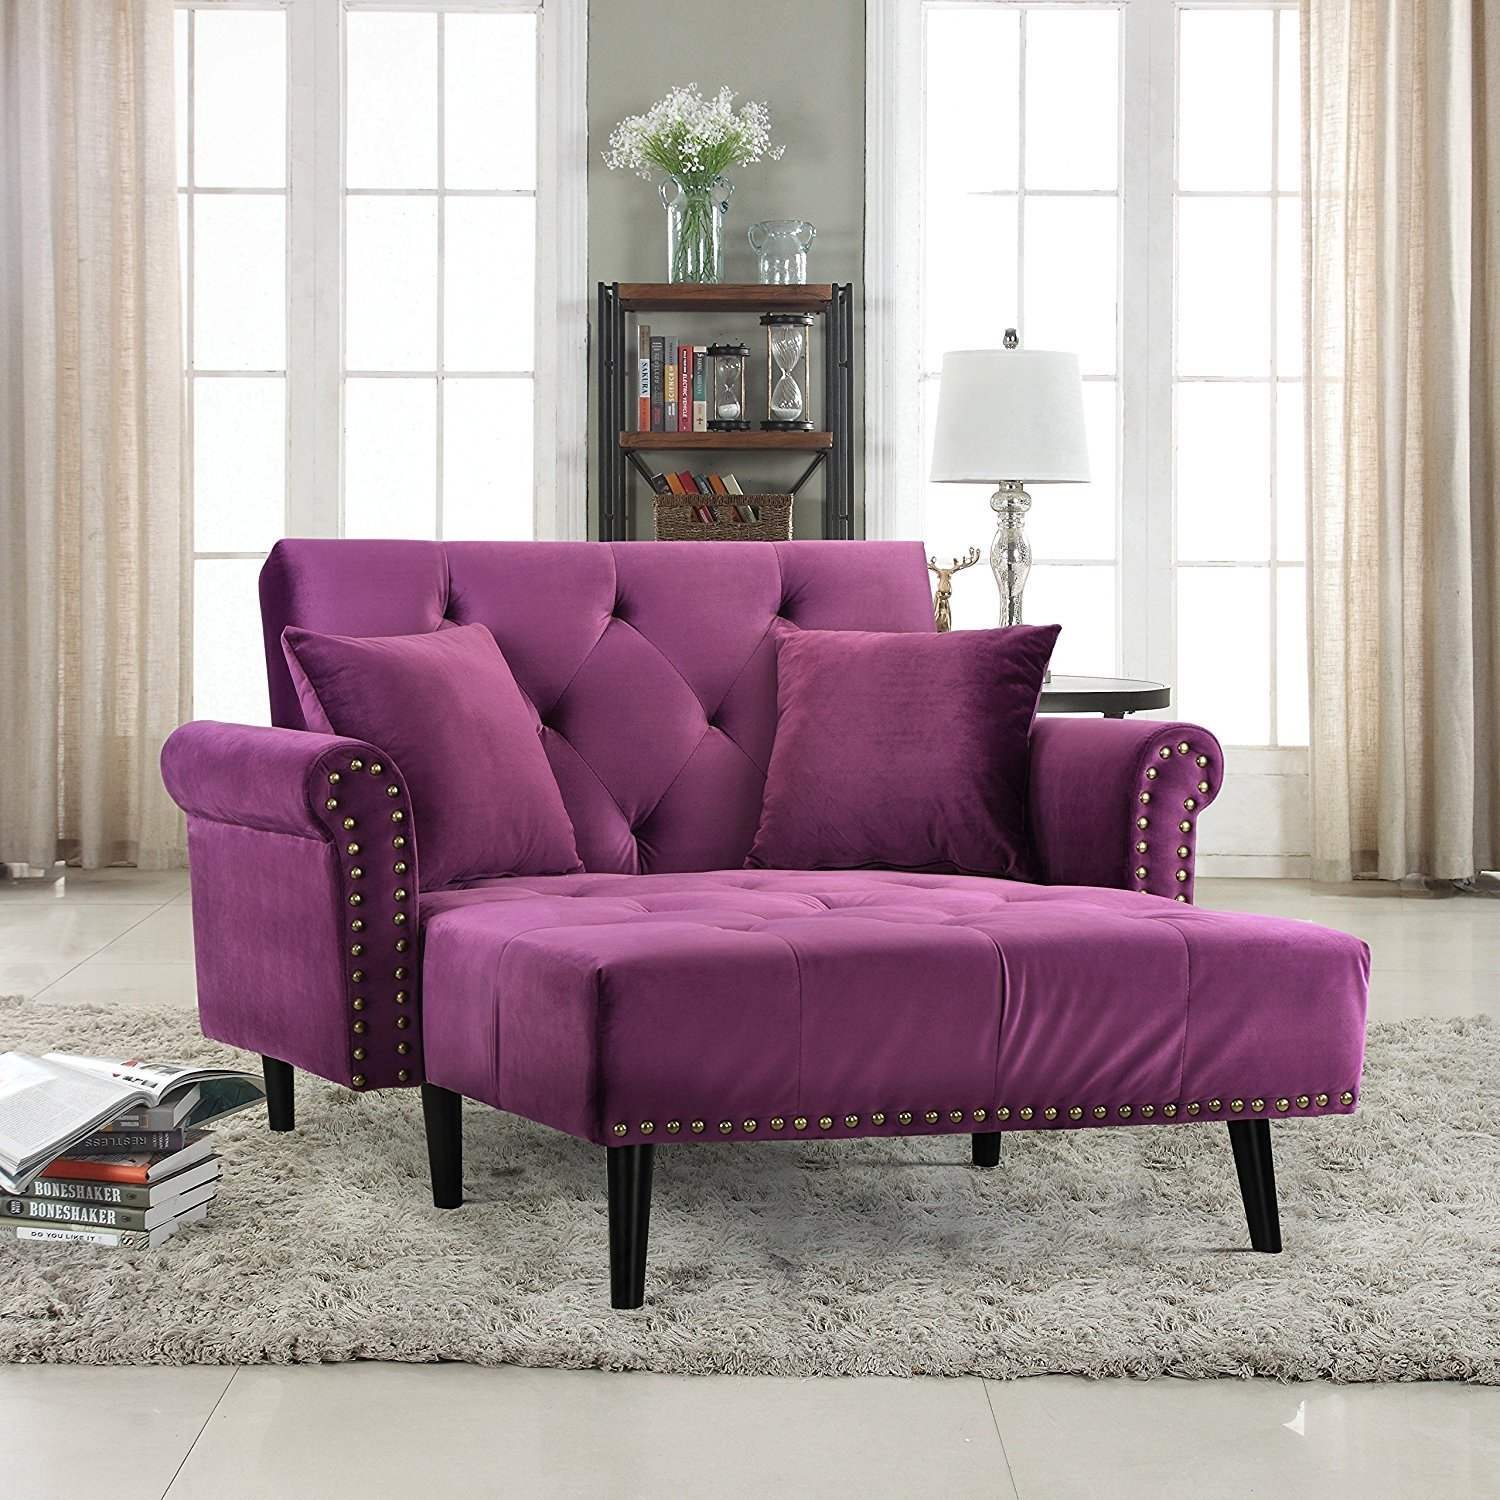 purple chaise lounge chair fishing pole classic modern velvet recliner sleeper w details about nailheads